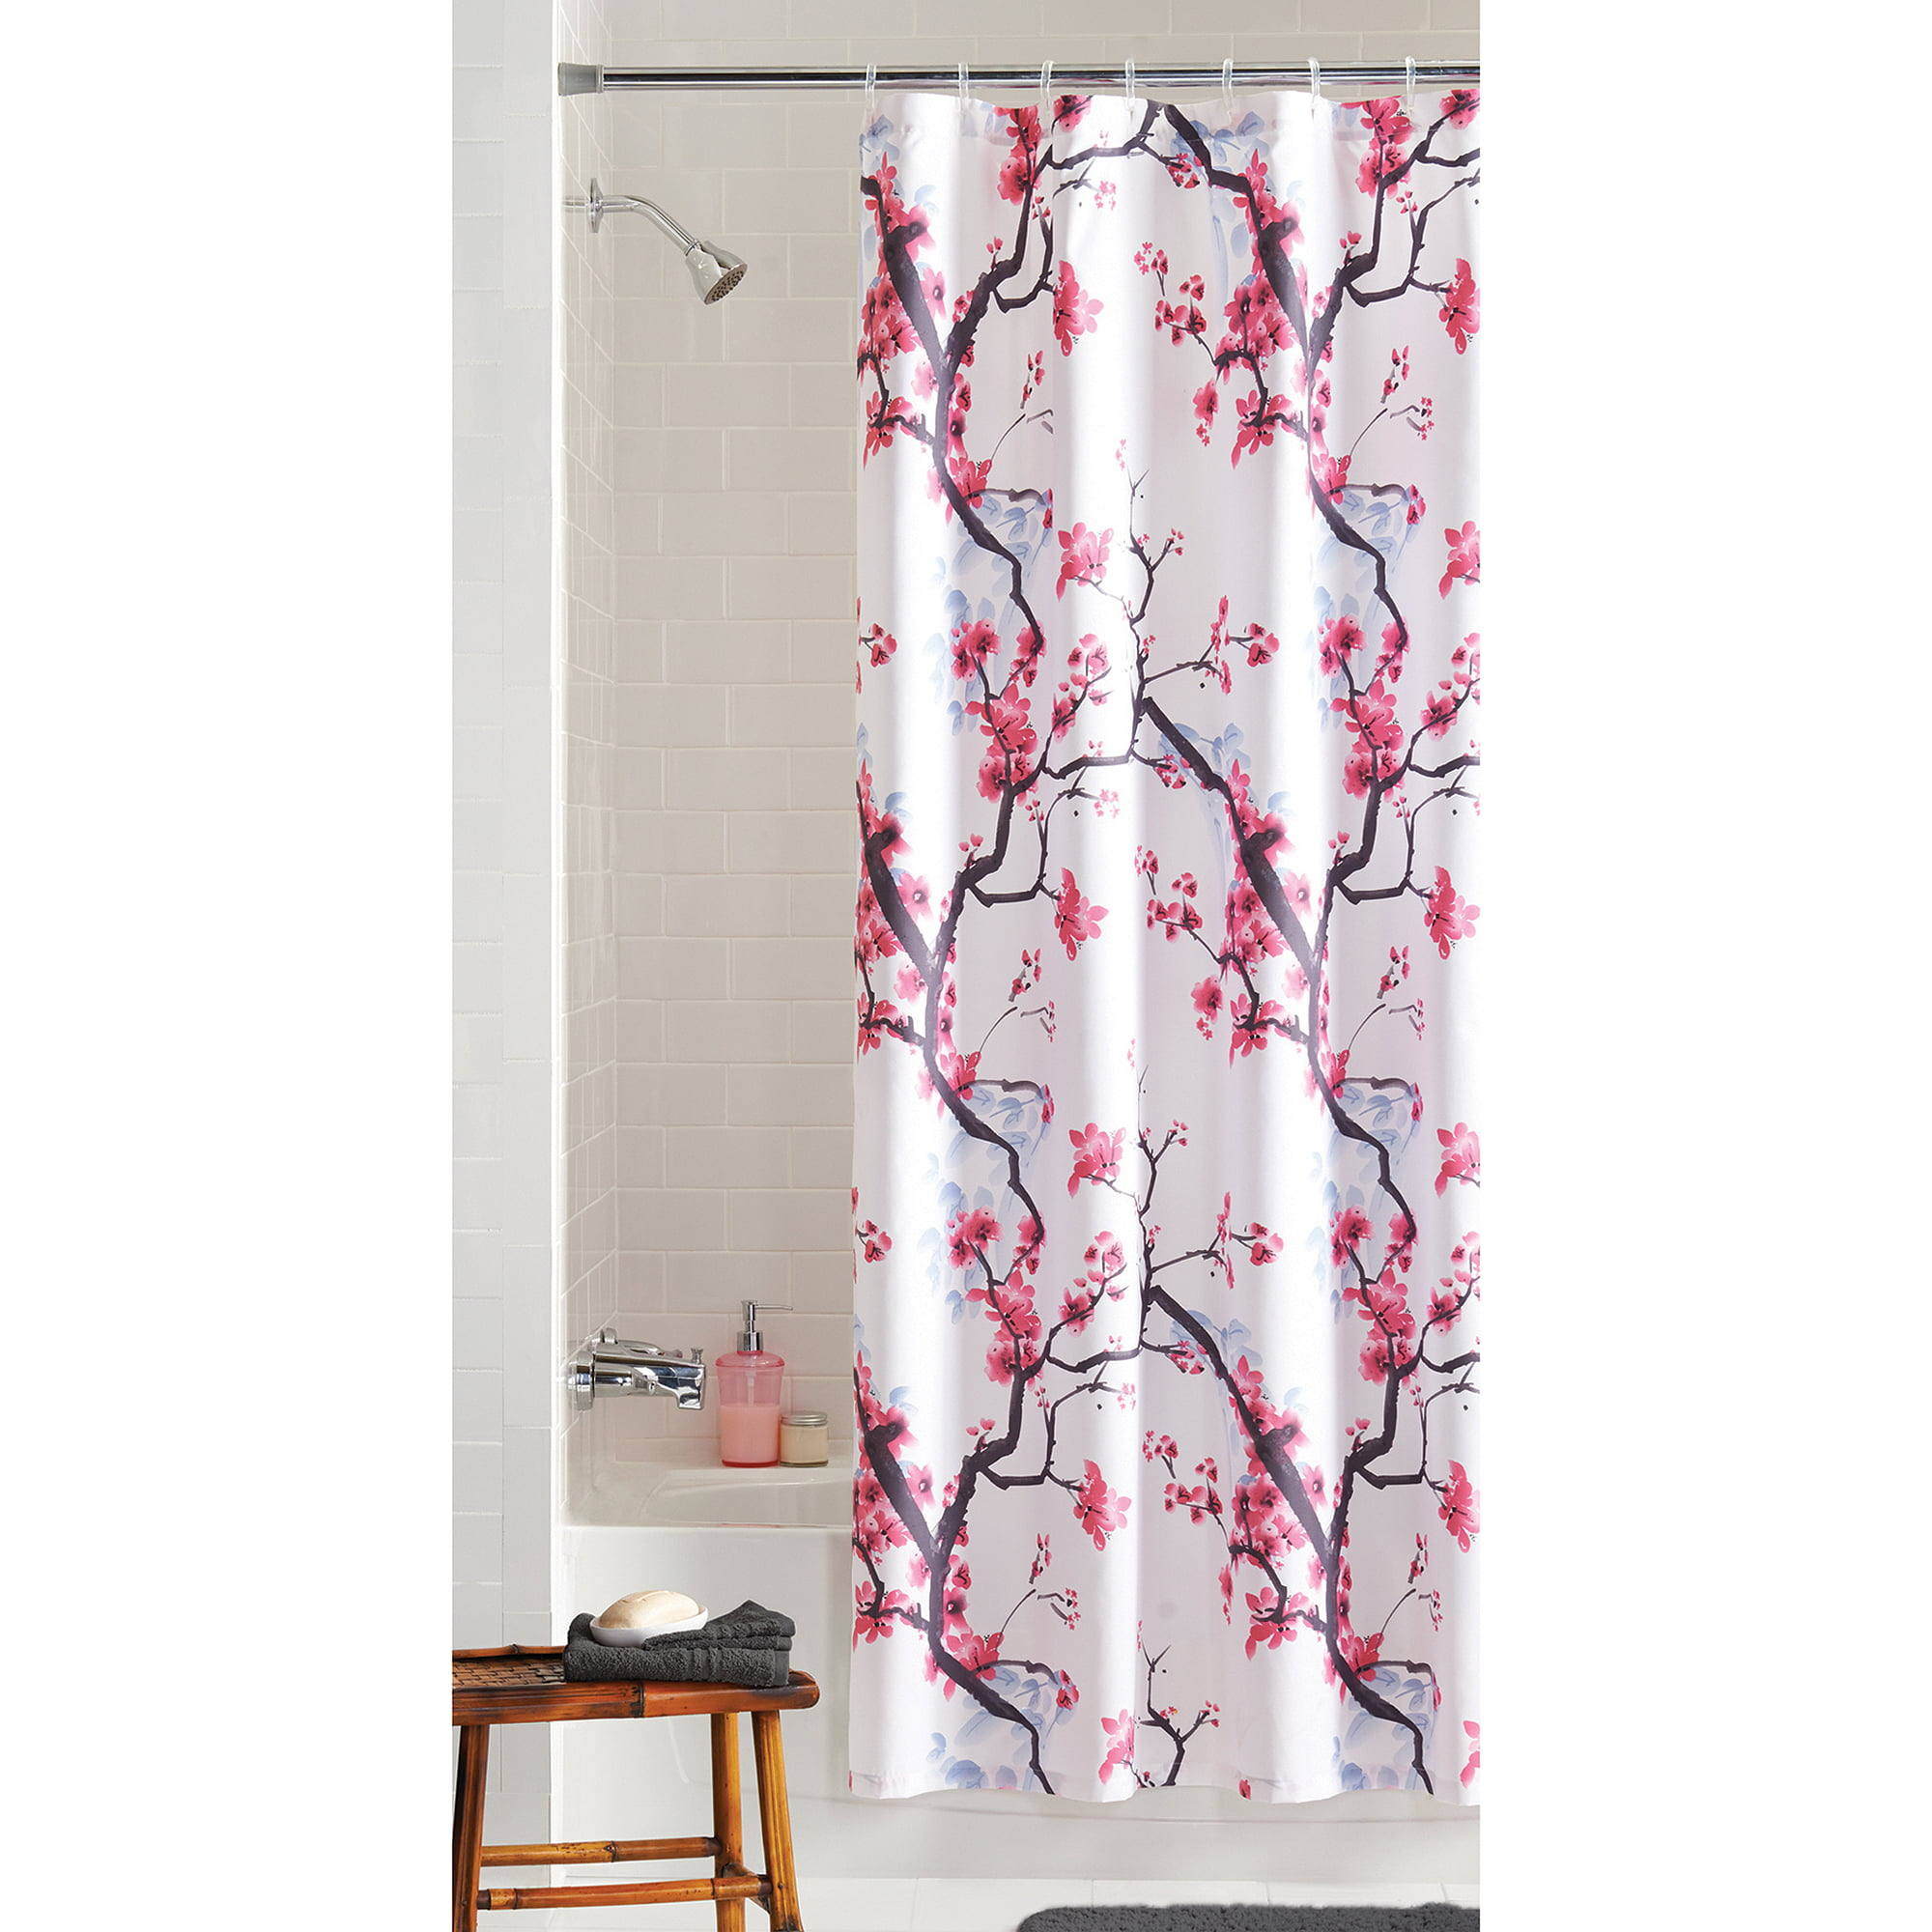 Maytex Pink Blossom Fabric Shower Curtain - Walmart.com